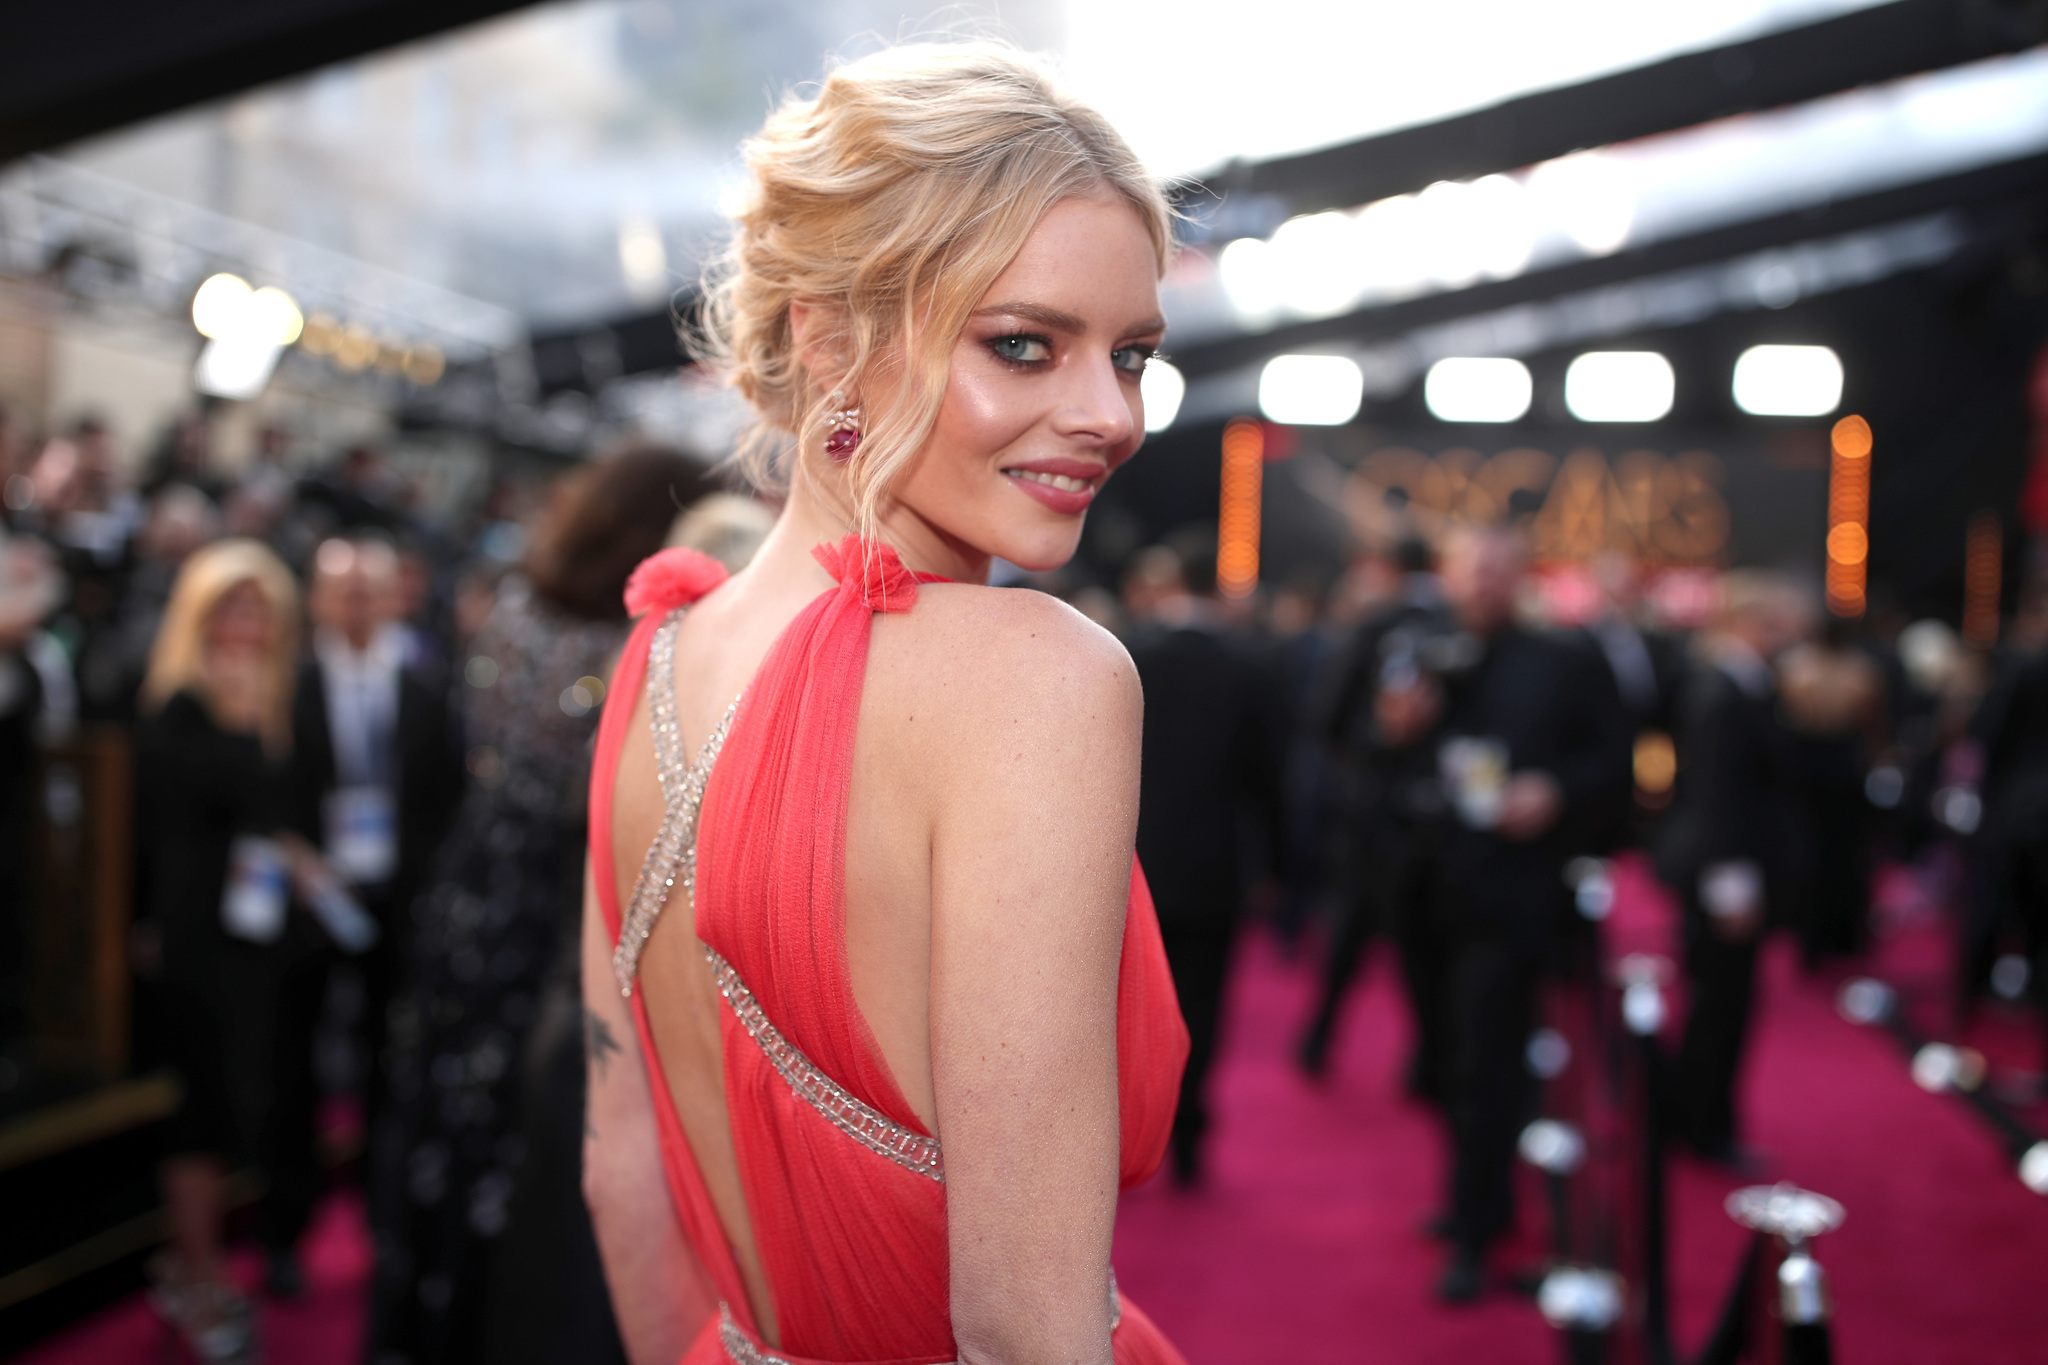 Pictures Samara Weaving nude (53 foto and video), Pussy, Paparazzi, Selfie, braless 2019